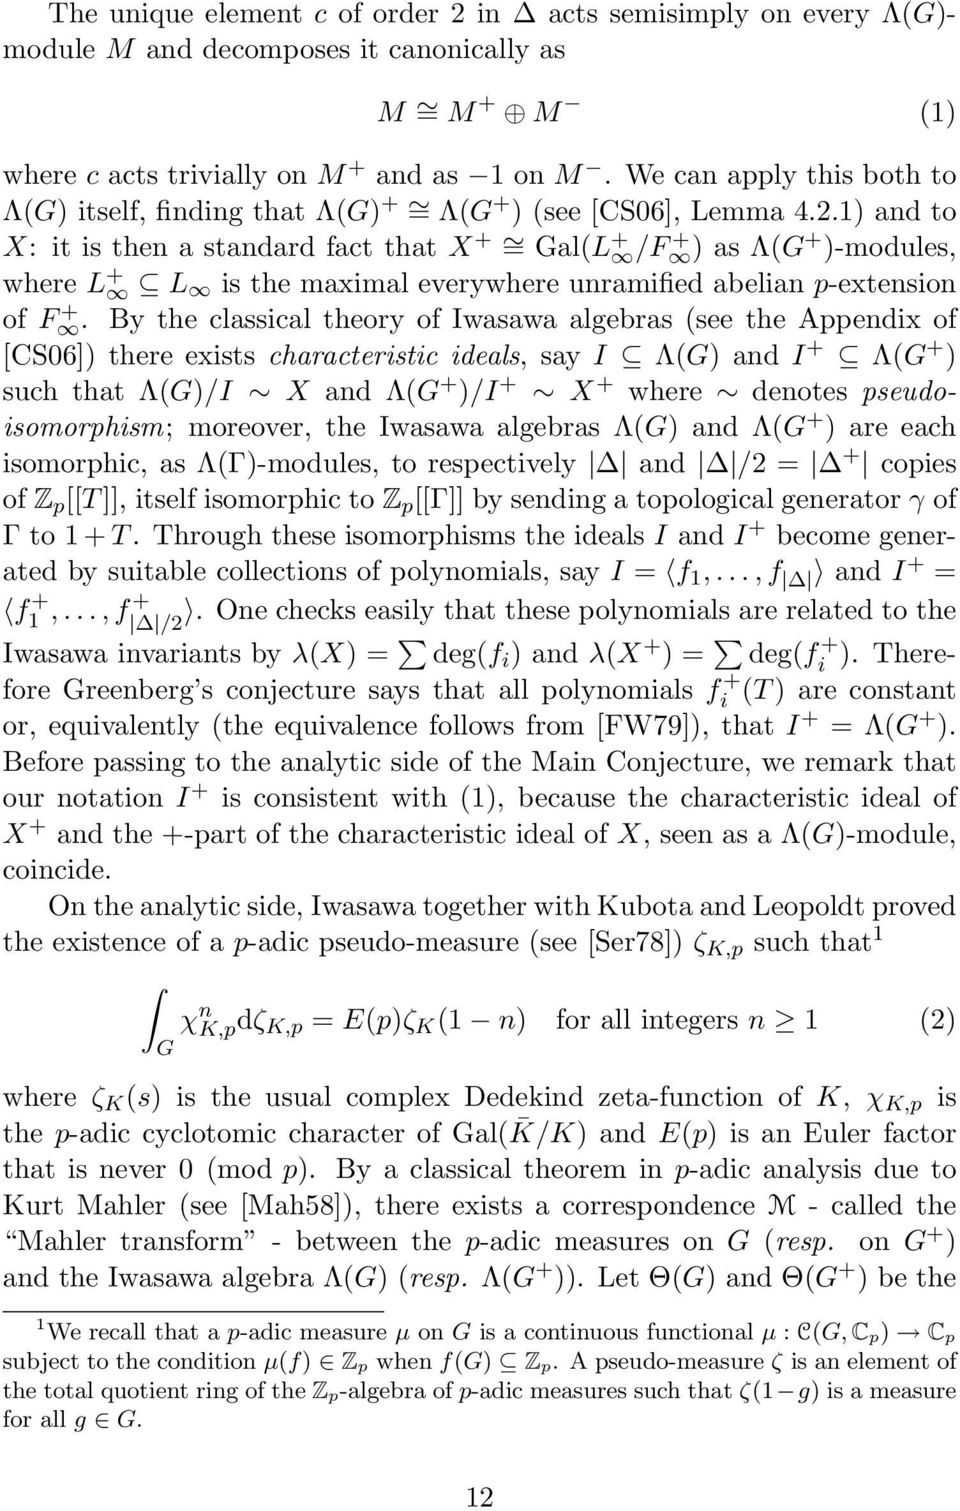 1) and to X: it is then a standard fact that X + = Gal(L + /F ) + as Λ(G + )-modules, where L + L is the maximal everywhere unramified abelian p-extension of F.